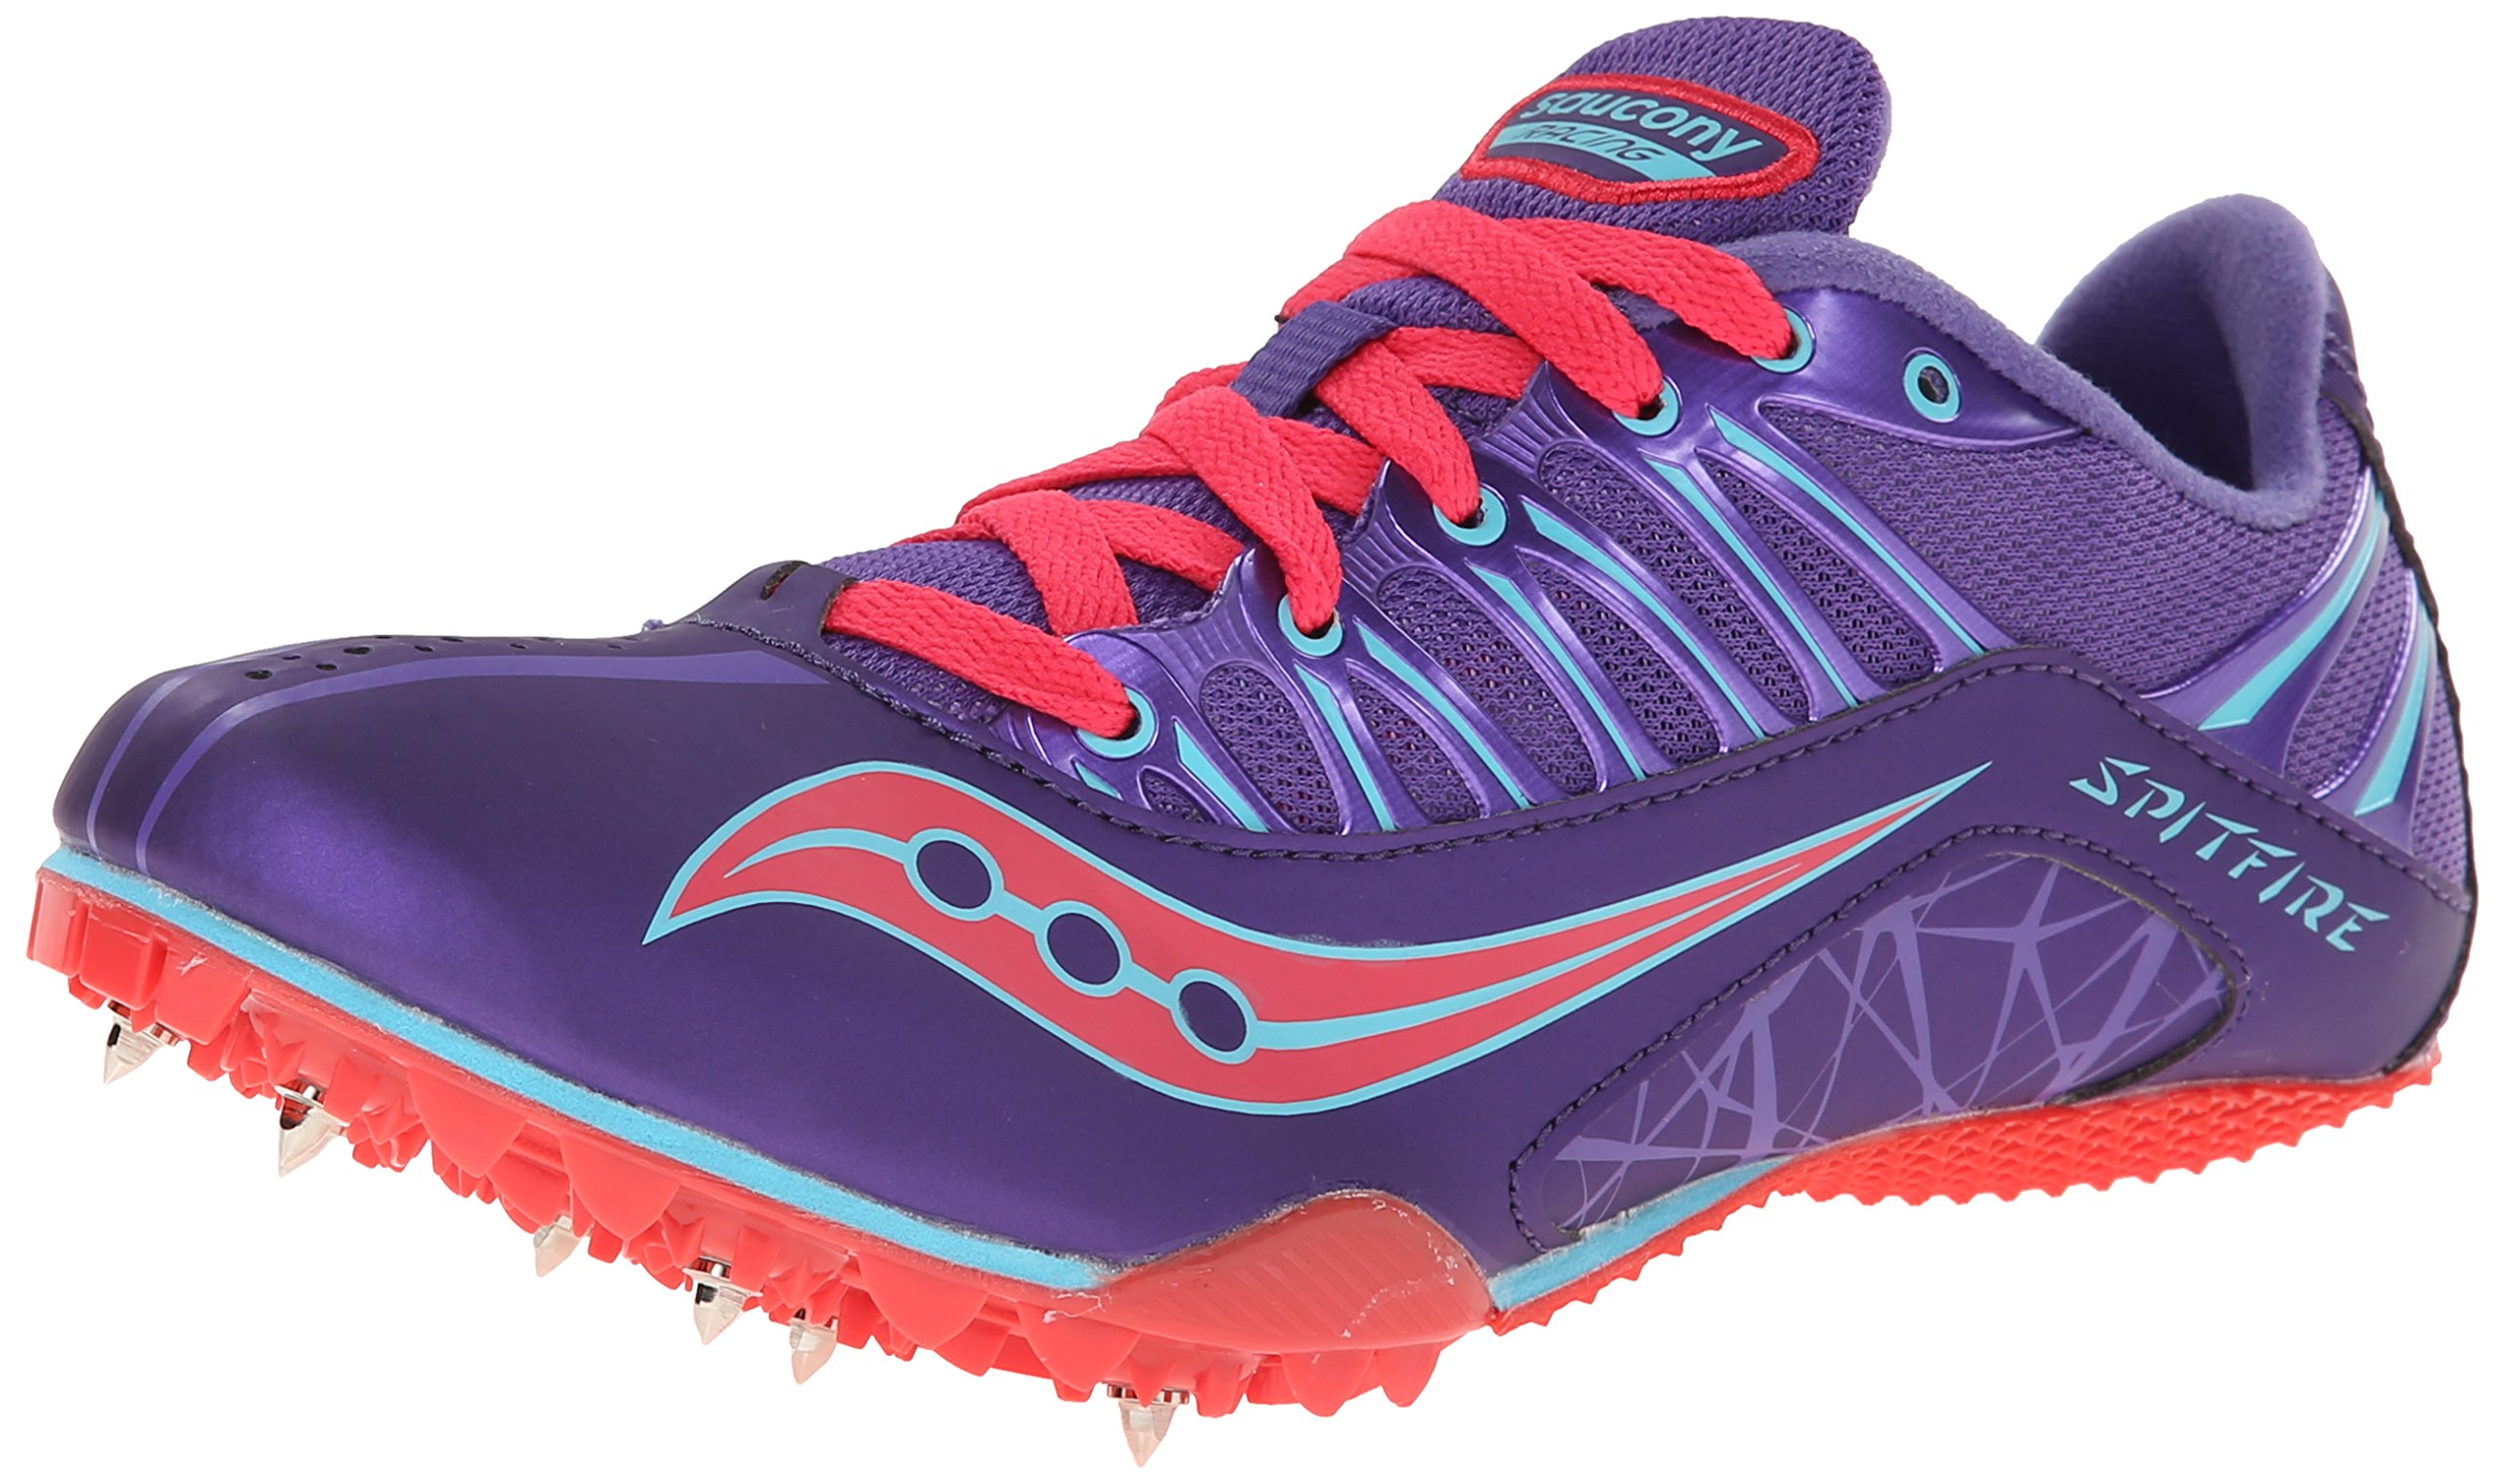 Saucony Women's Spitfire Track Spike Racing Shoe,Purple/Pink,12 M US